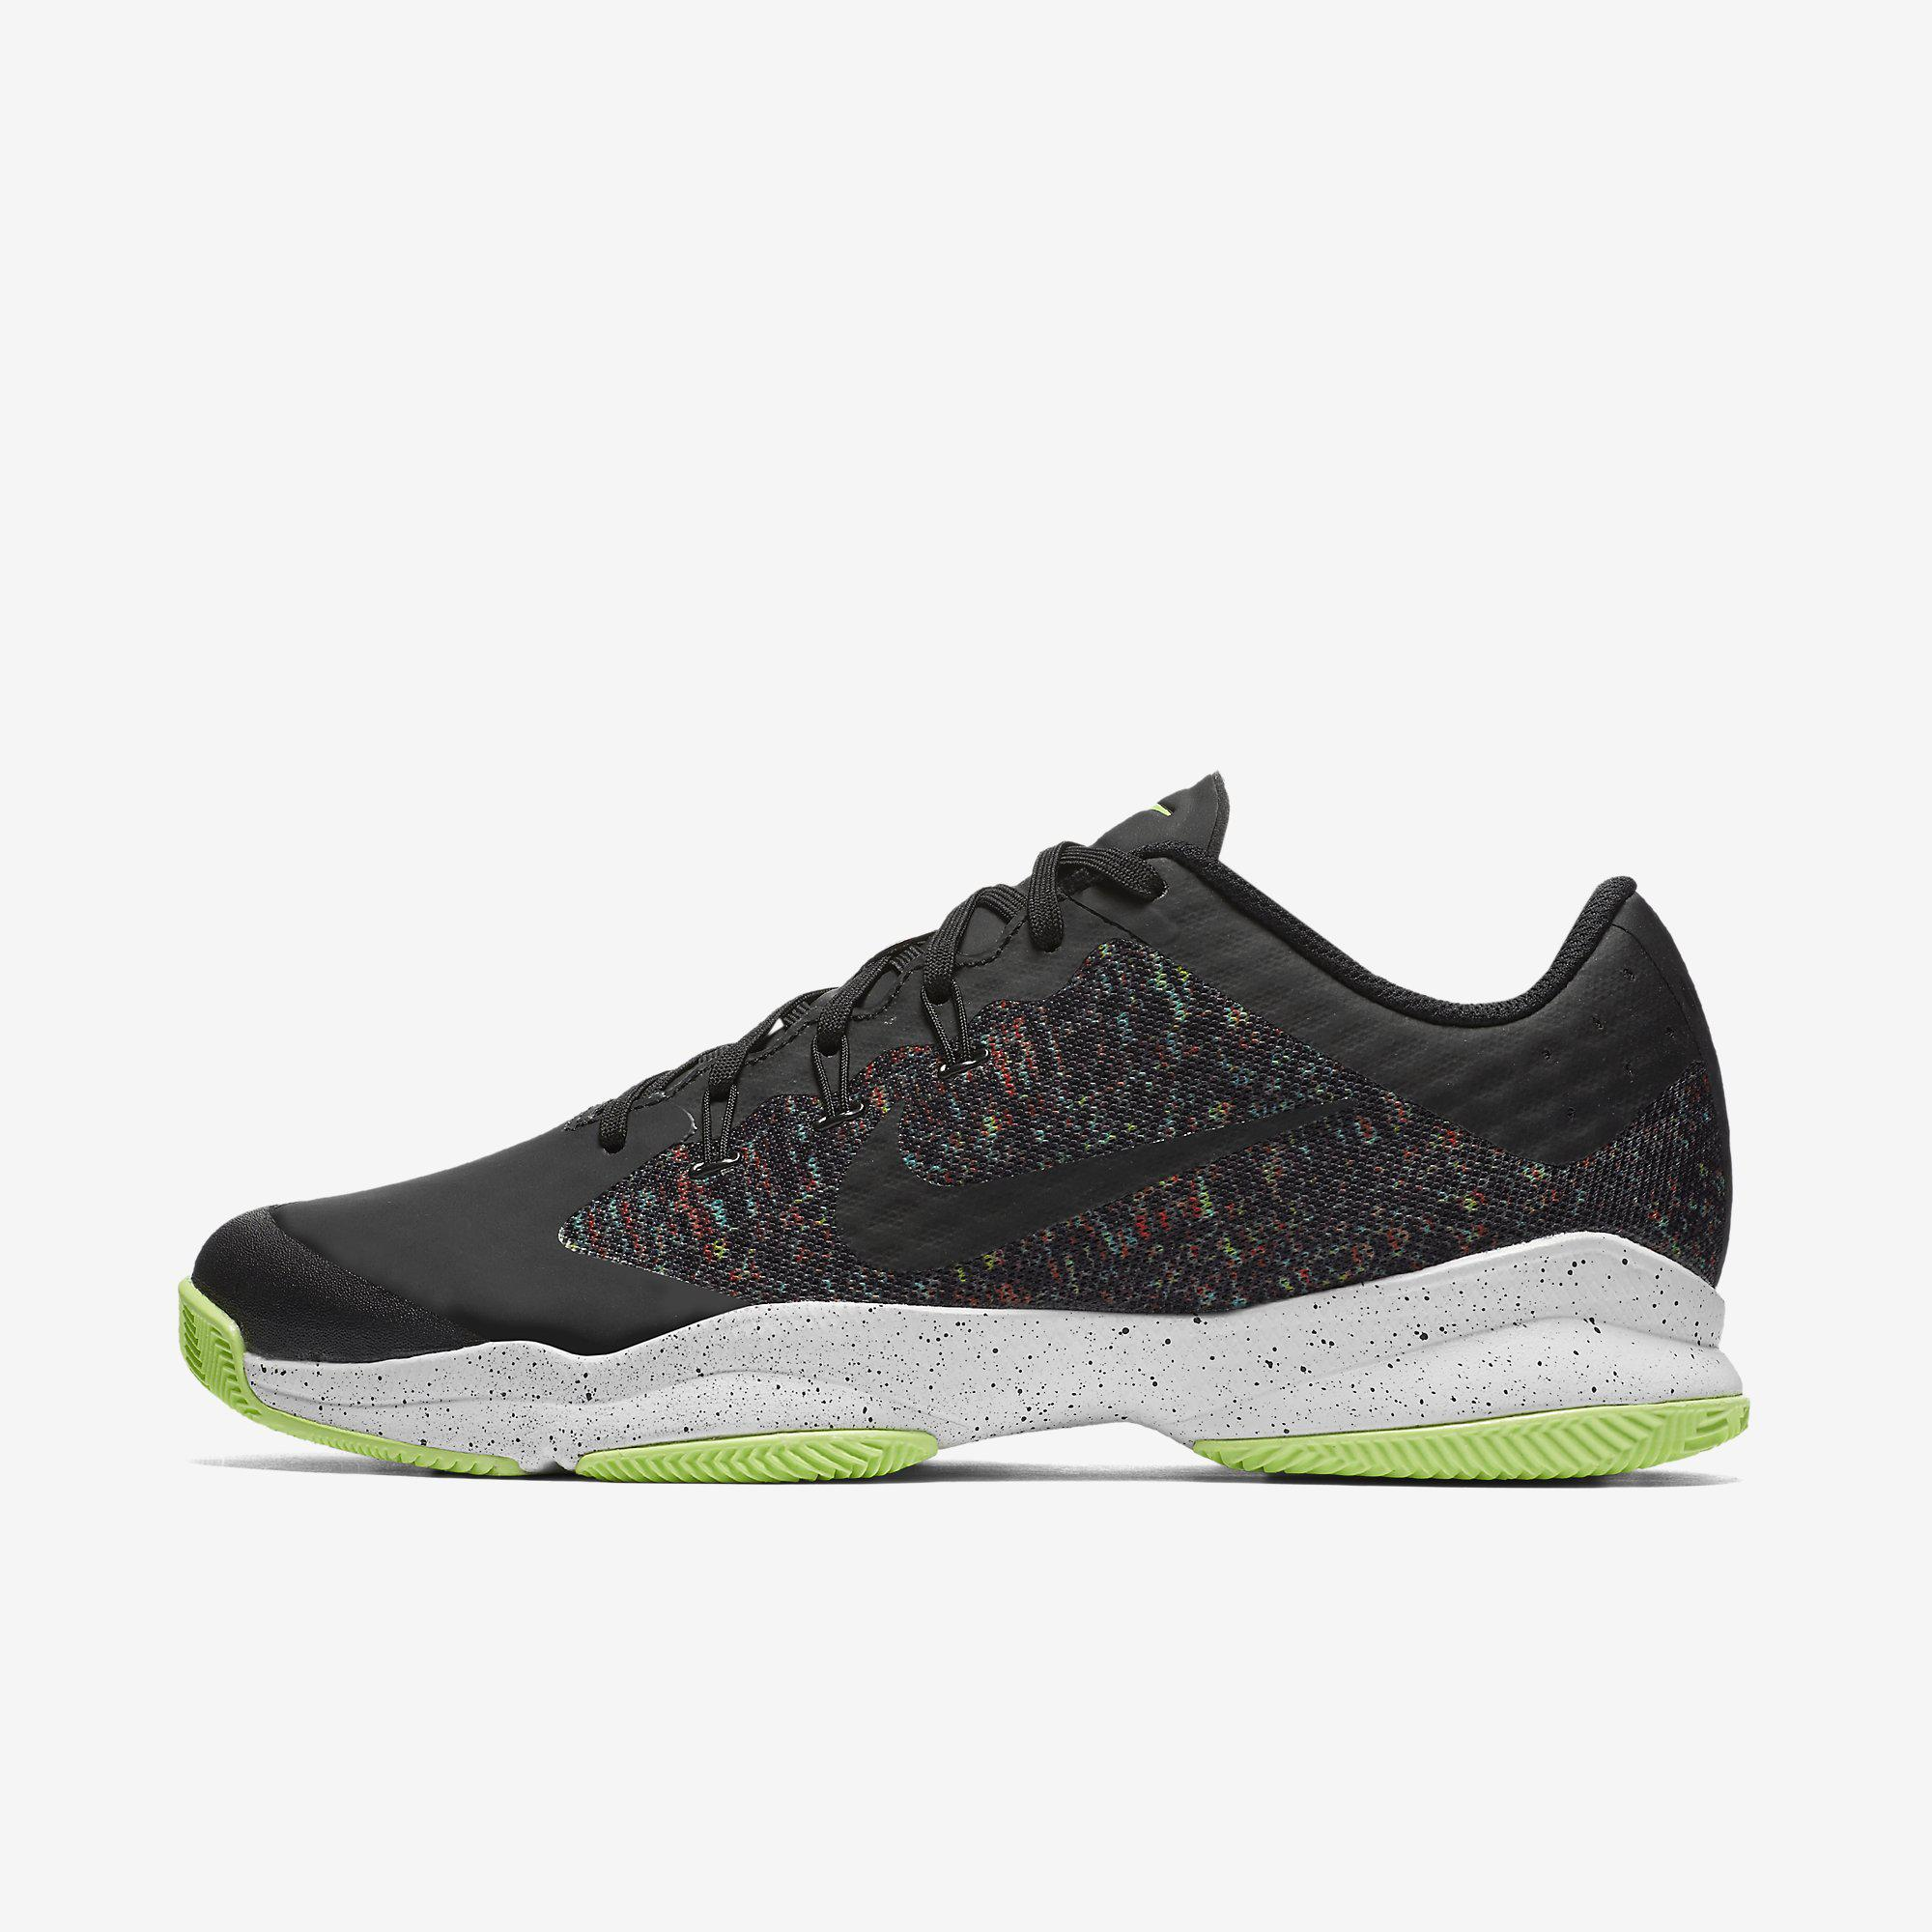 detailed look b3519 11108 Nike Mens Air Zoom Ultra Tennis Shoes - Multi-Colour  Limited Edition  -  Tennisnuts.com